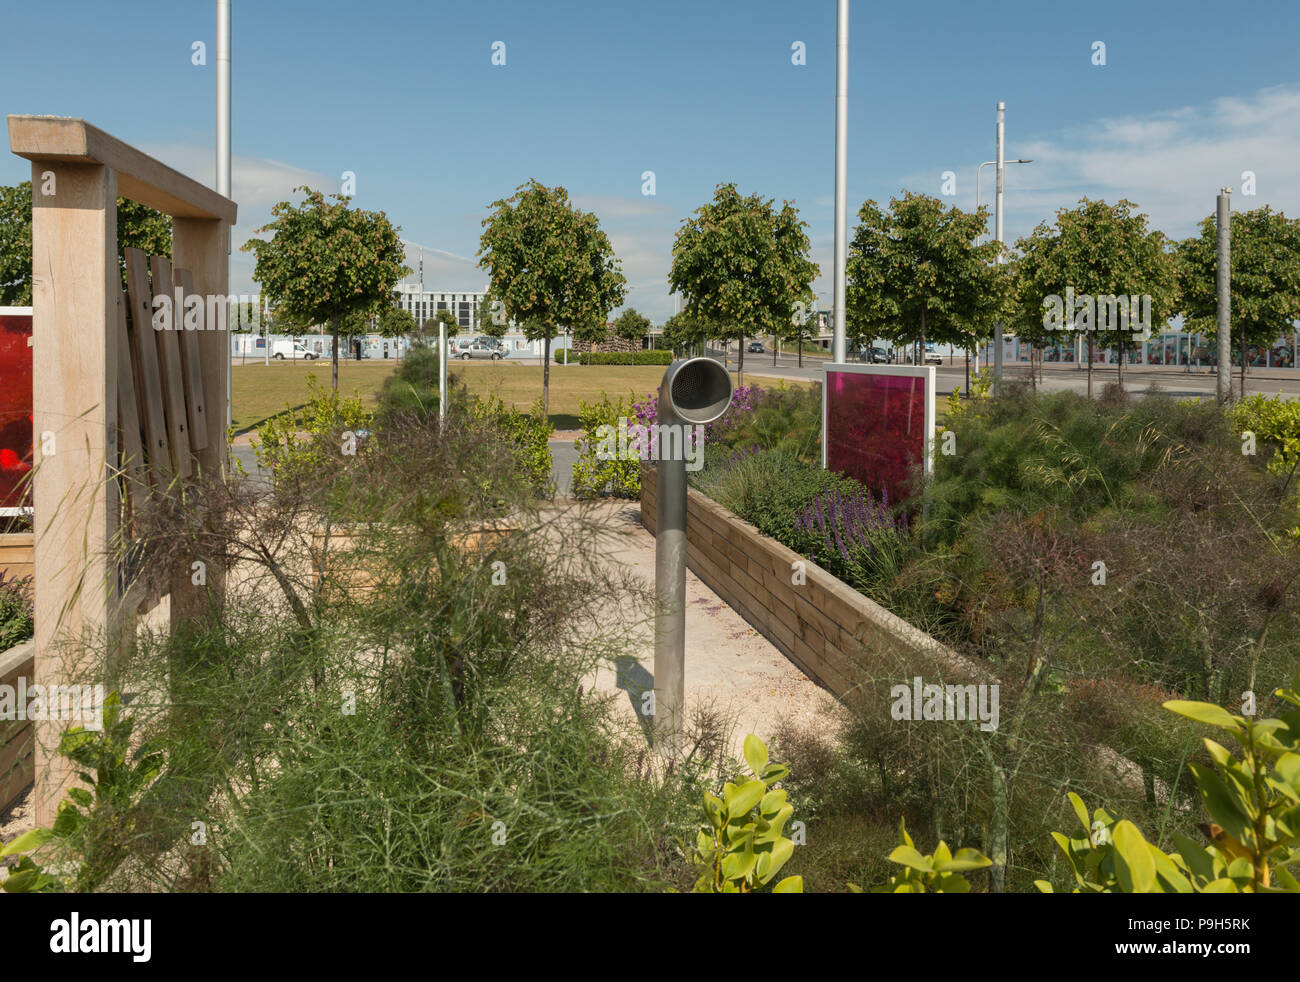 There are multiple sensory elements in the sensory garden of Slessor Gardens, part of the Dundee Waterfront development scheme, Dundee, Scotland, UK. - Stock Image